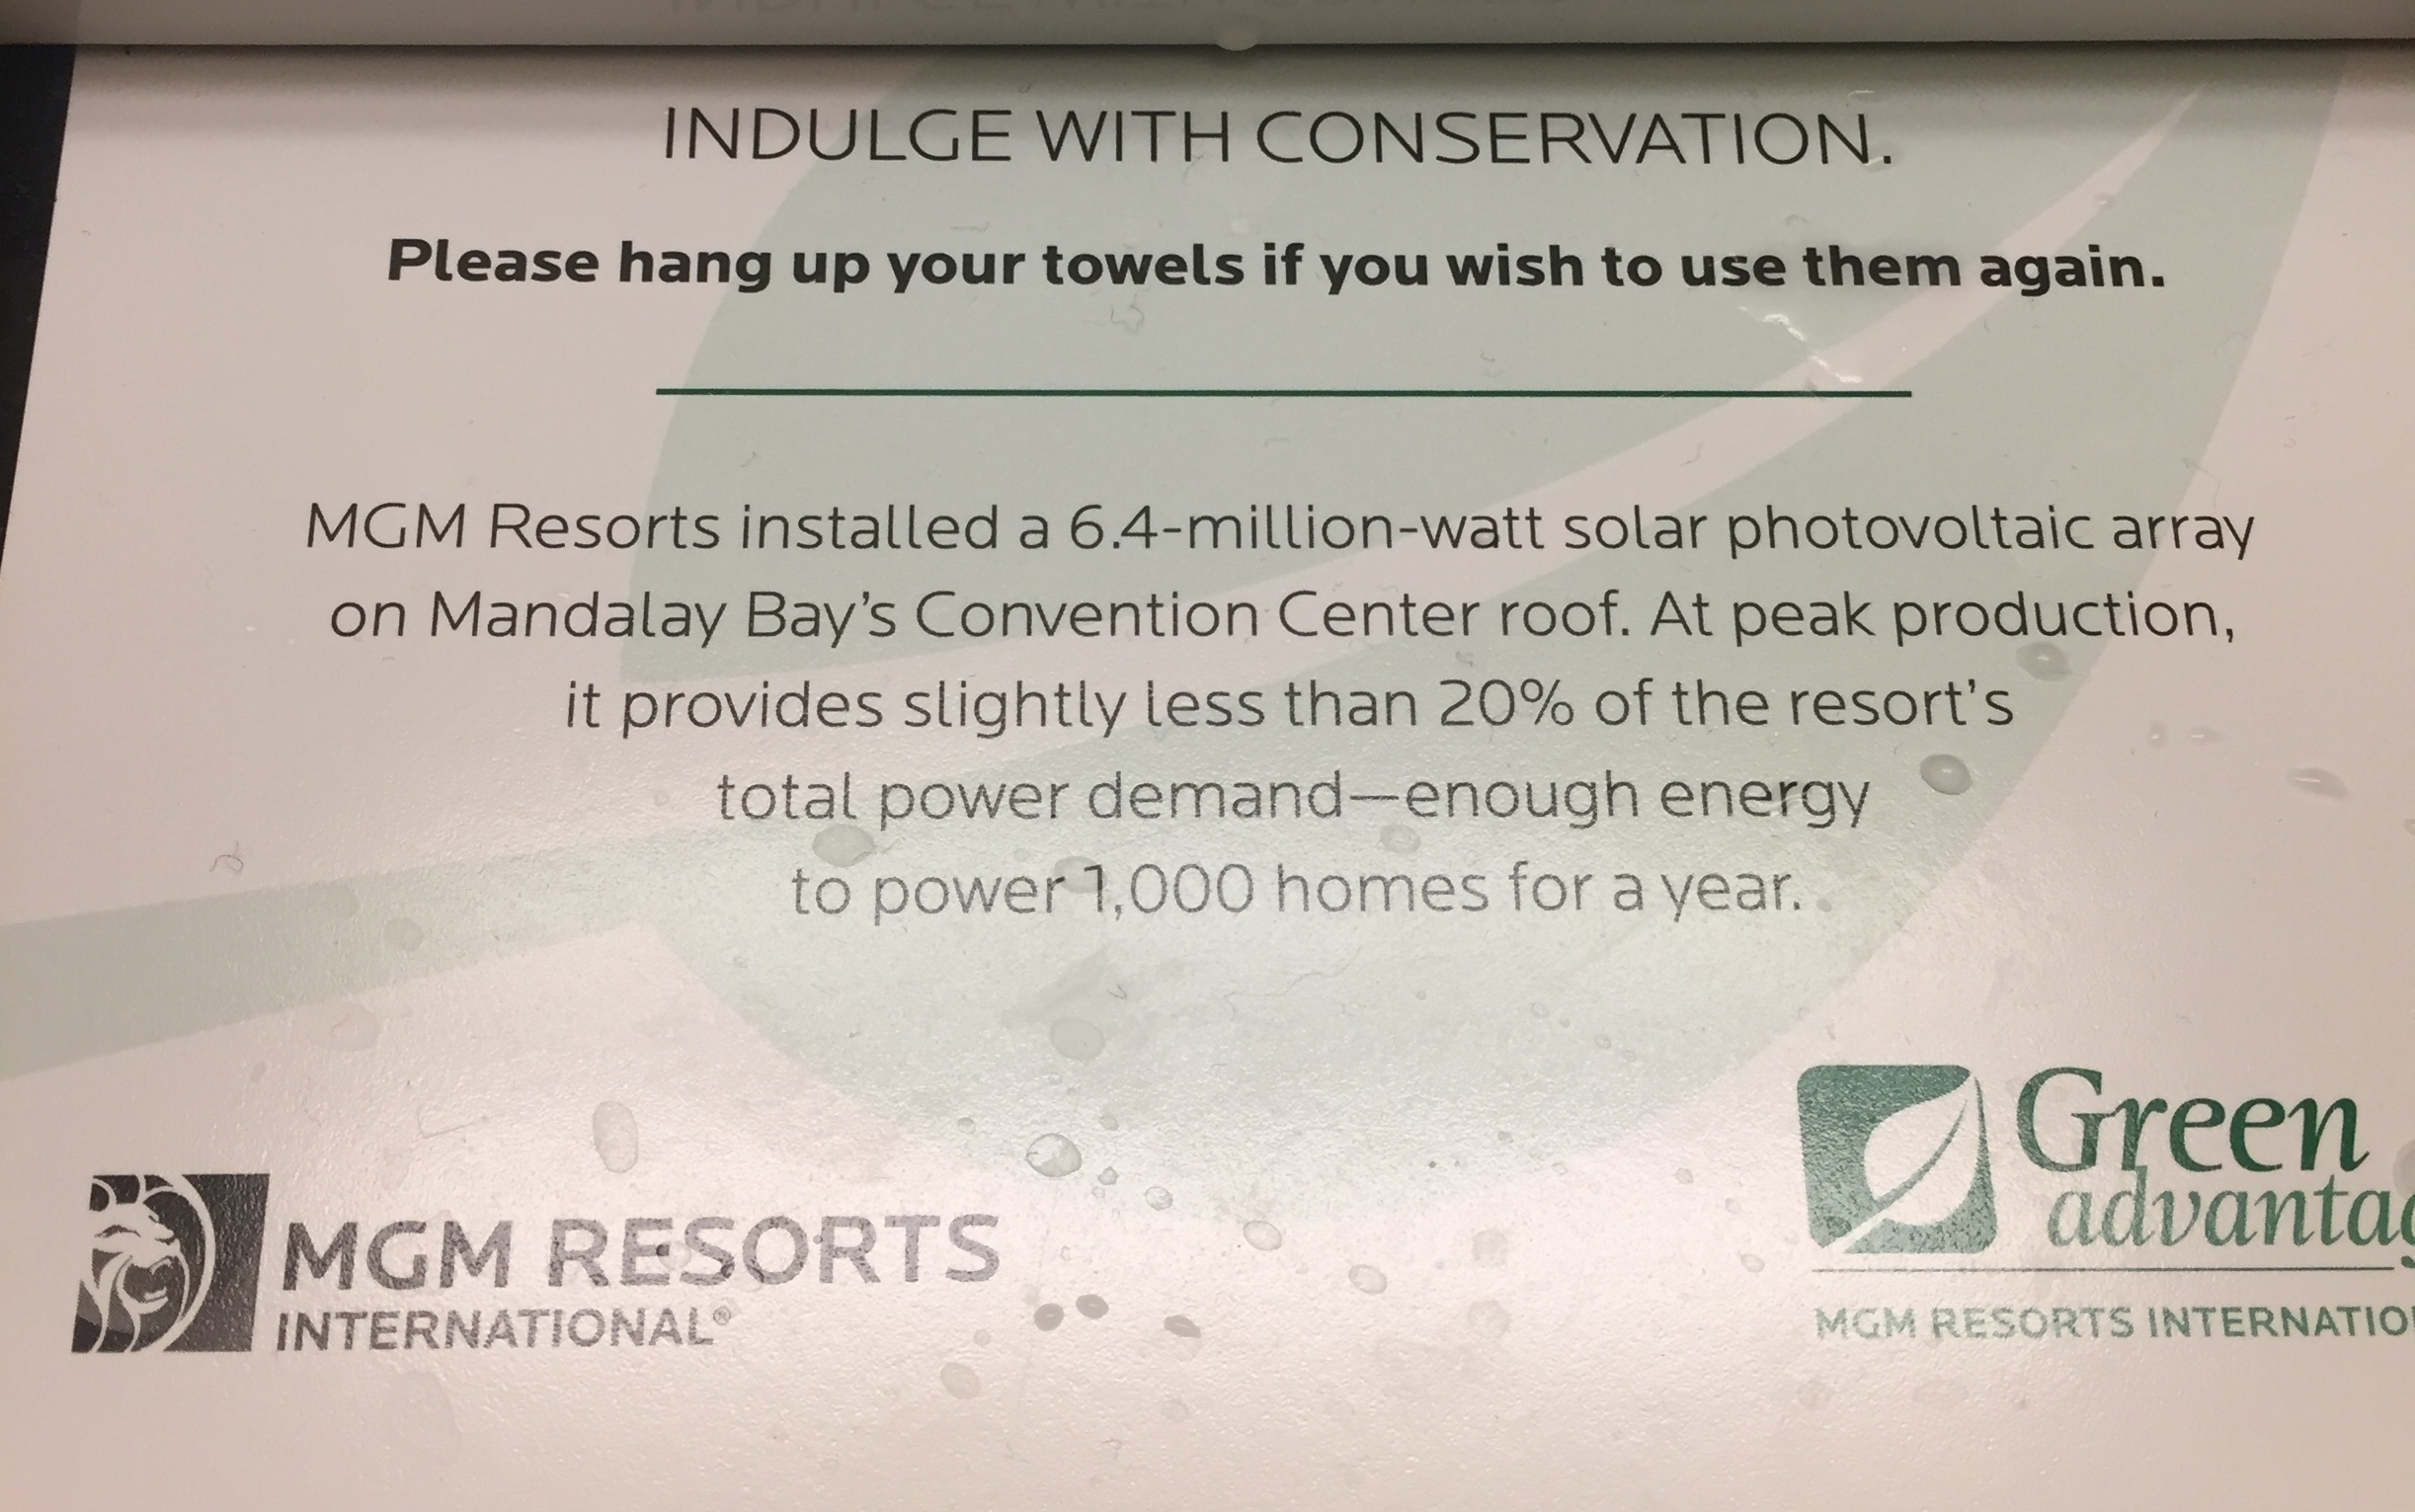 MGM Resorts has installed solar panels on Mandalay Bay's roof.